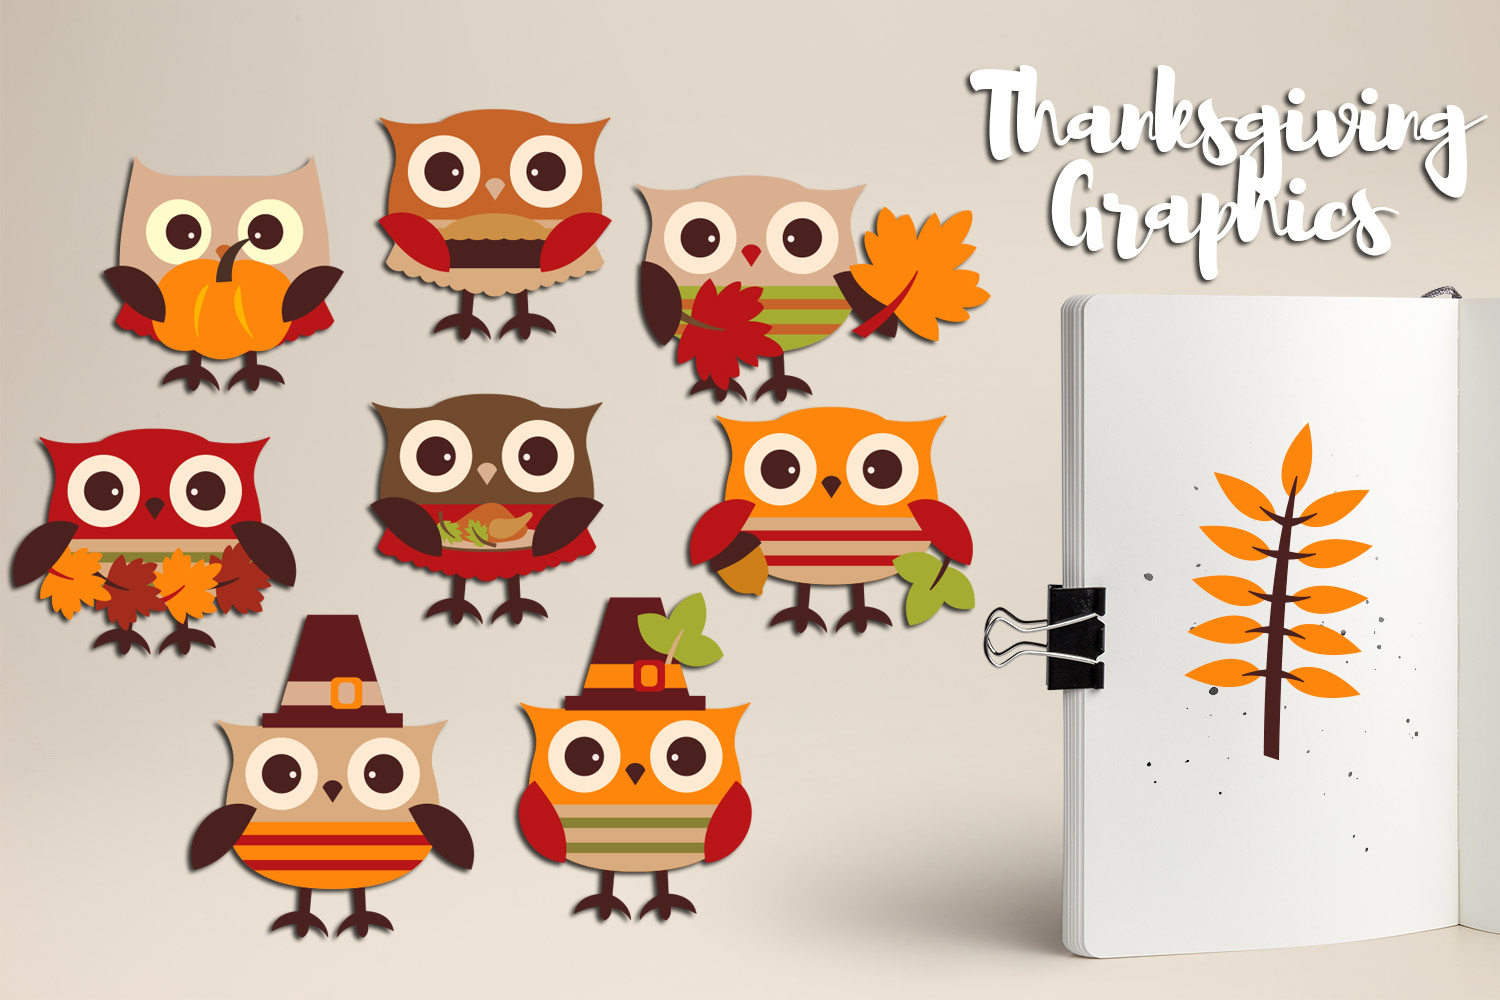 Cute Owl Thanksgiving Clipart Graphics.